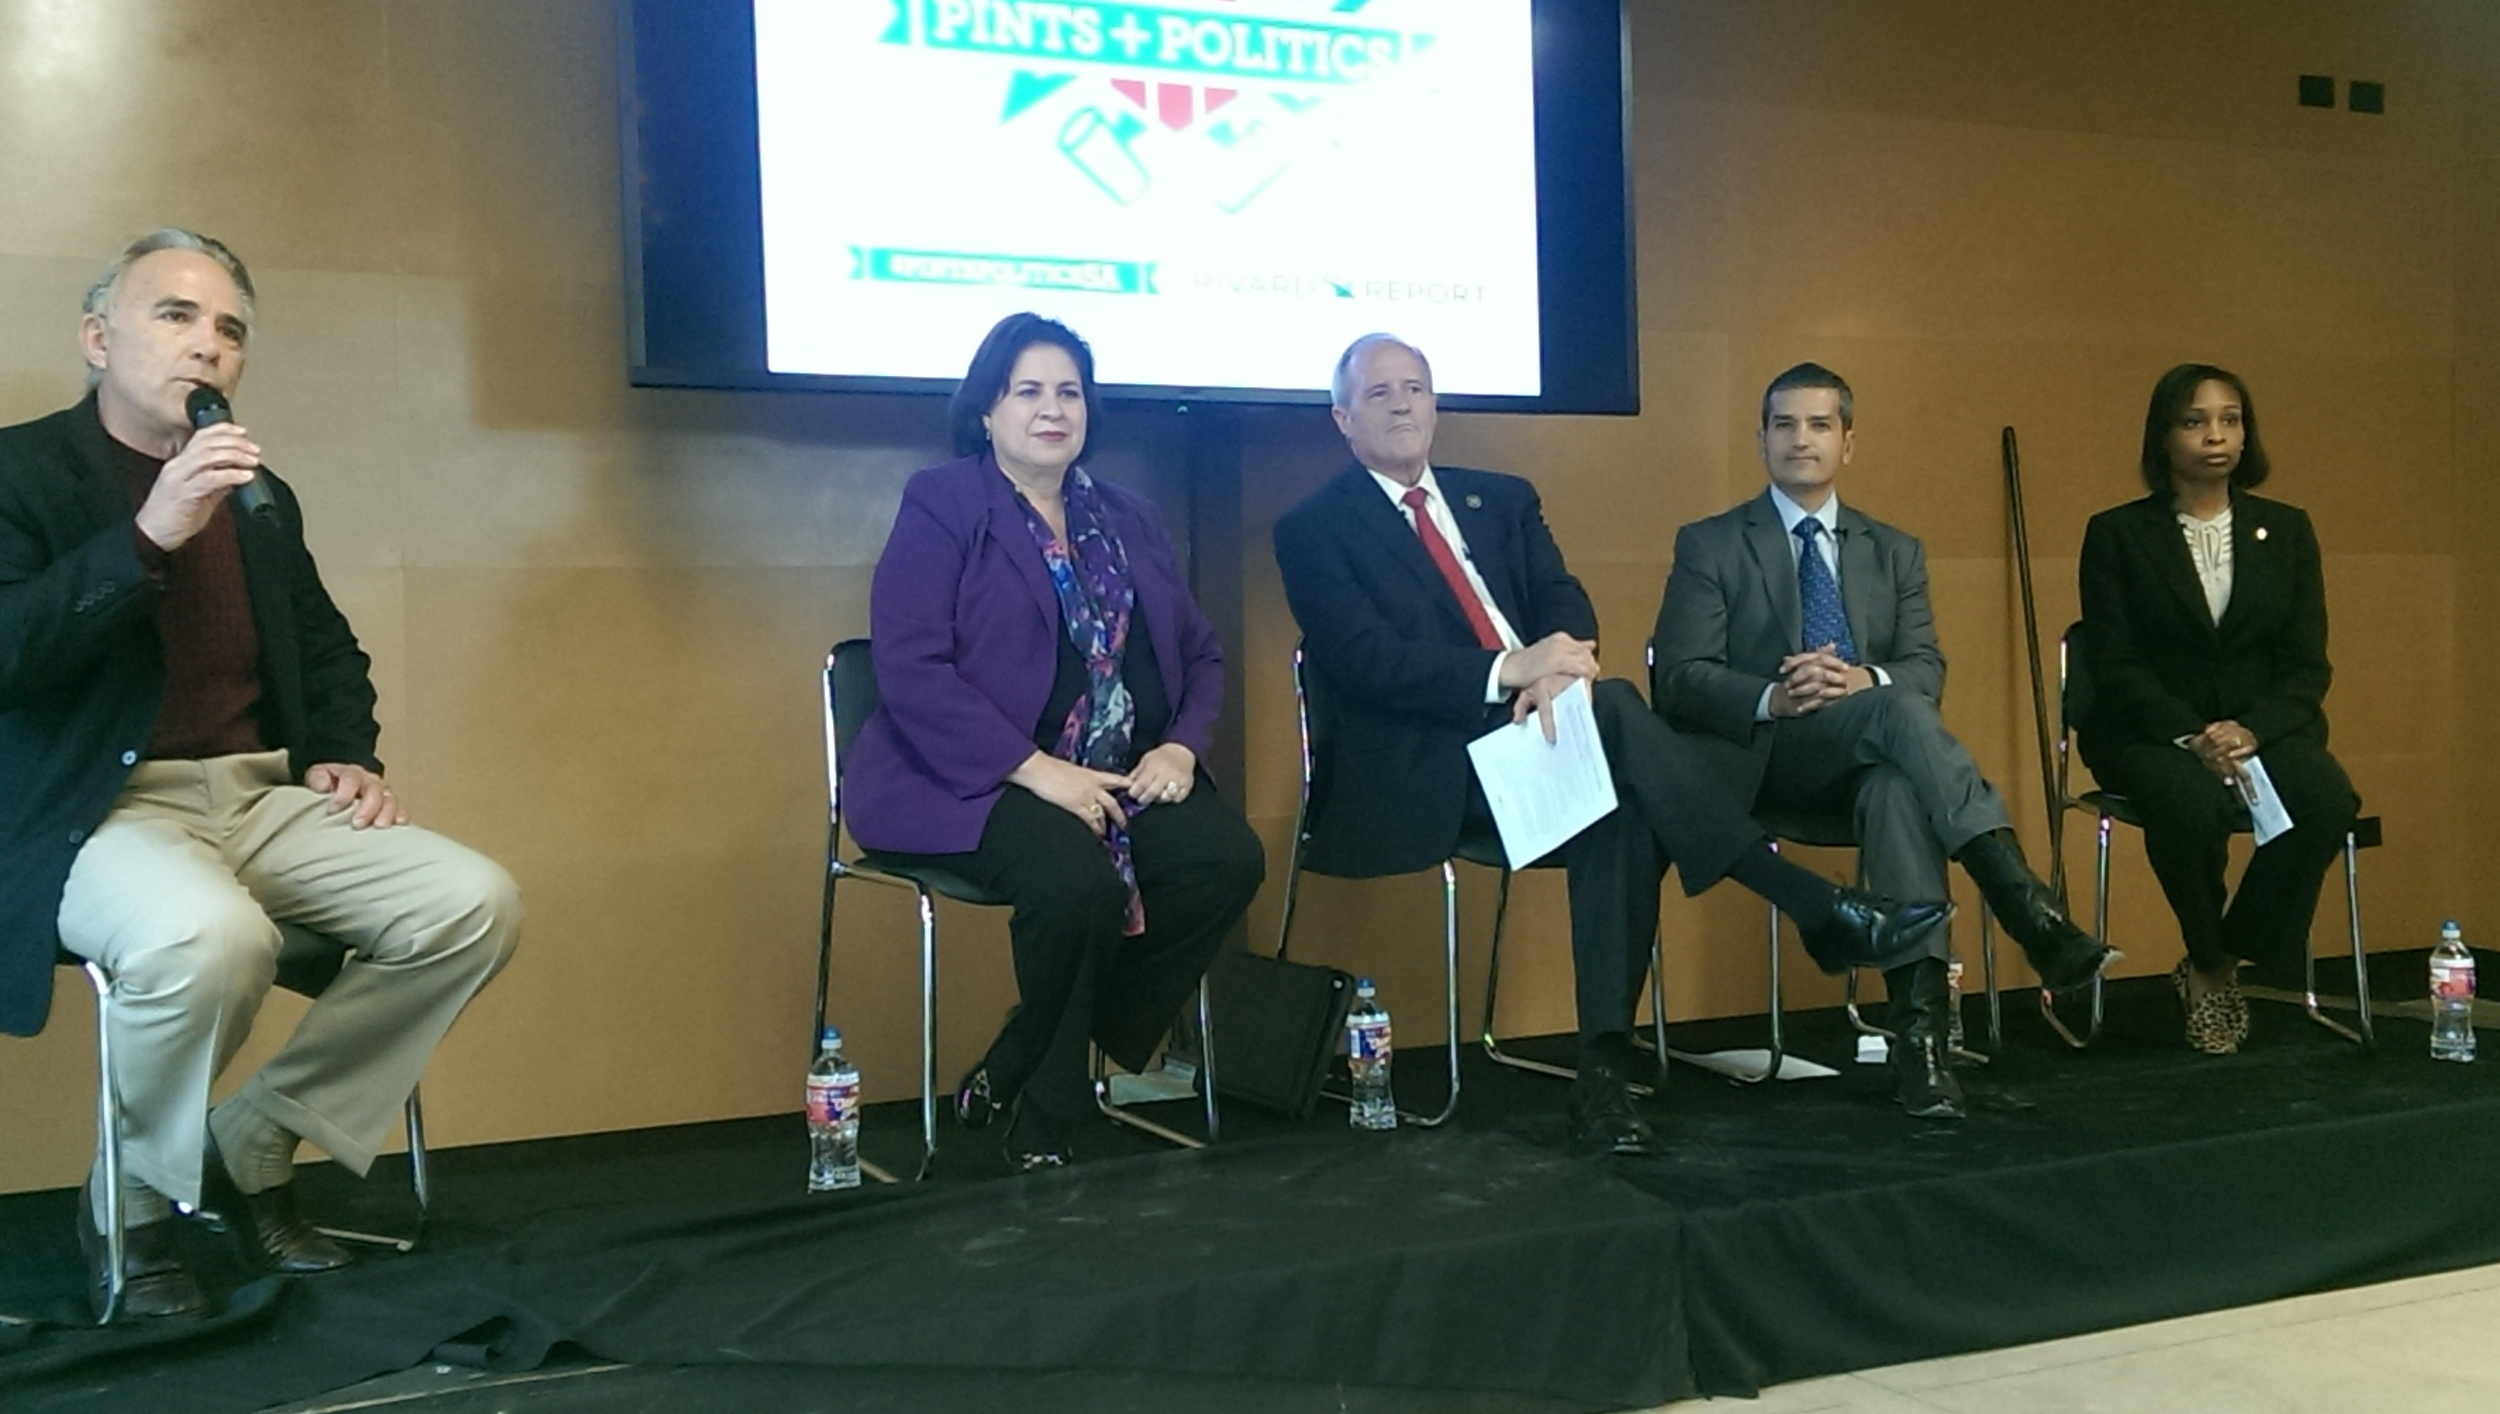 2015 Mayoral Candidates speak at the Rivard Report's Pints and Politics Event.  Pictured (L to R) Robert Rivard (moderator), Leticia Van de Putte, Tommy Adkisson, Mike Villareal and Ivy Taylor.